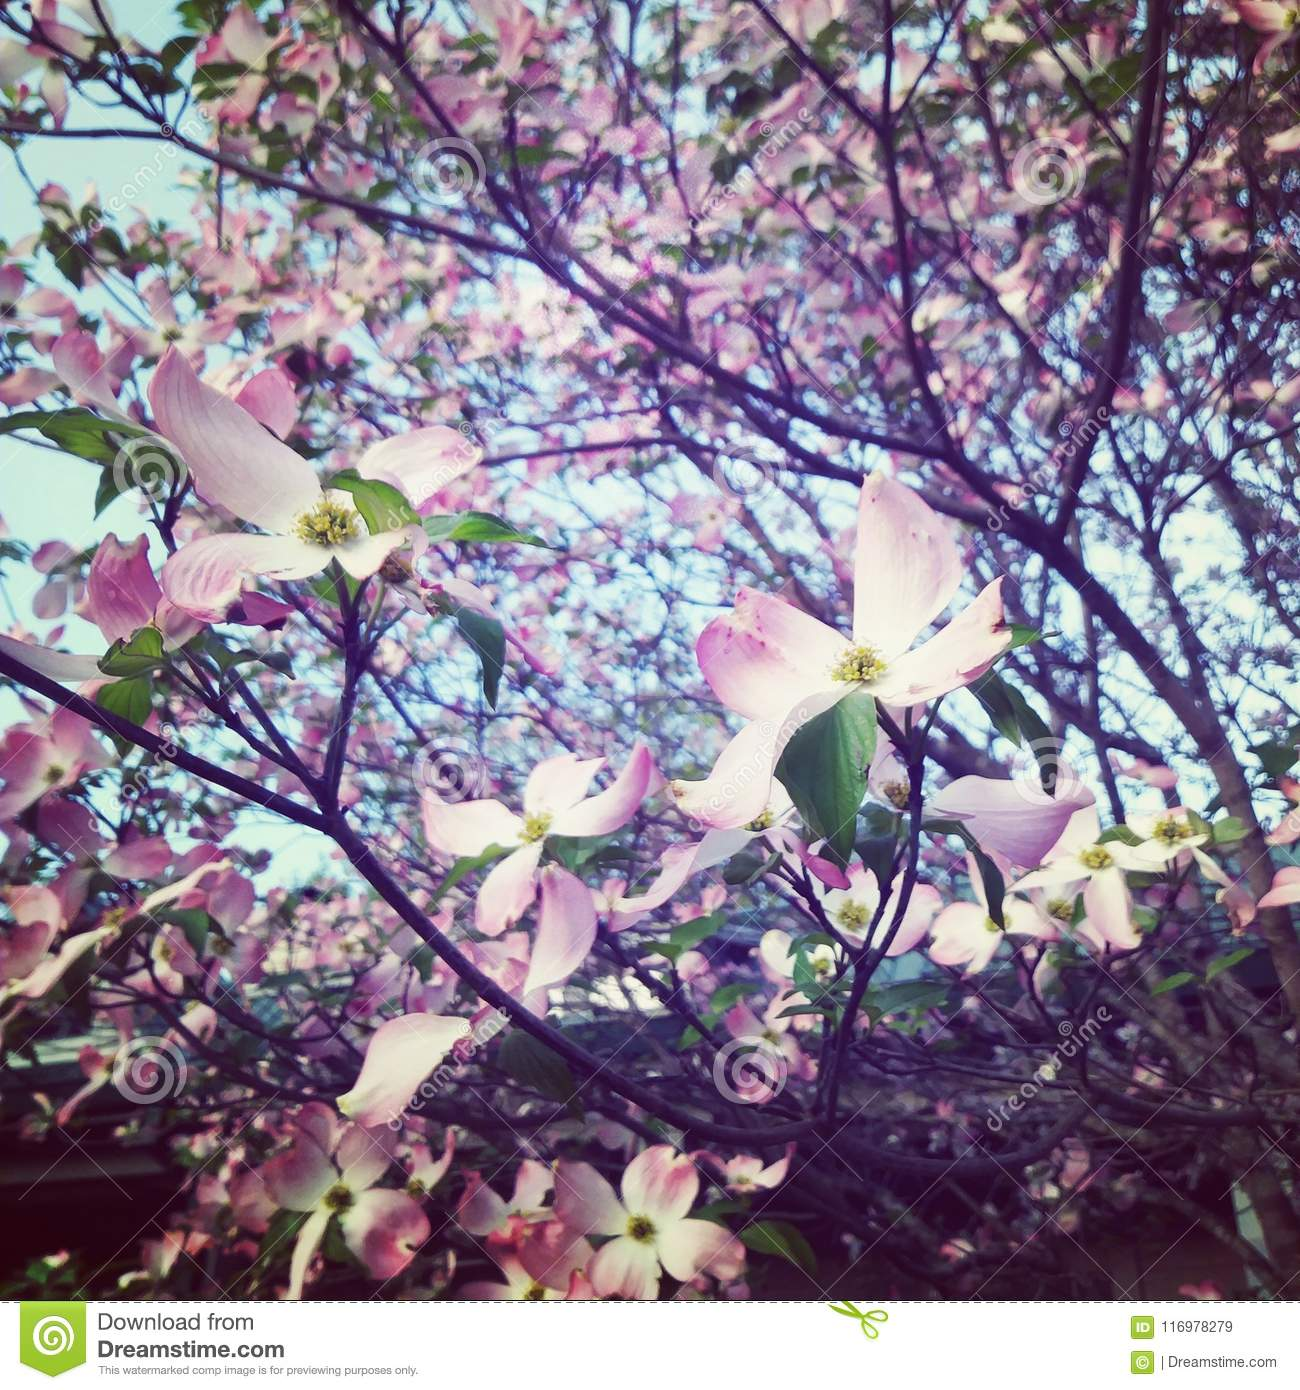 Albero Con Fiori Bianchi dogwood blooming trees in the spring pink and white flowers